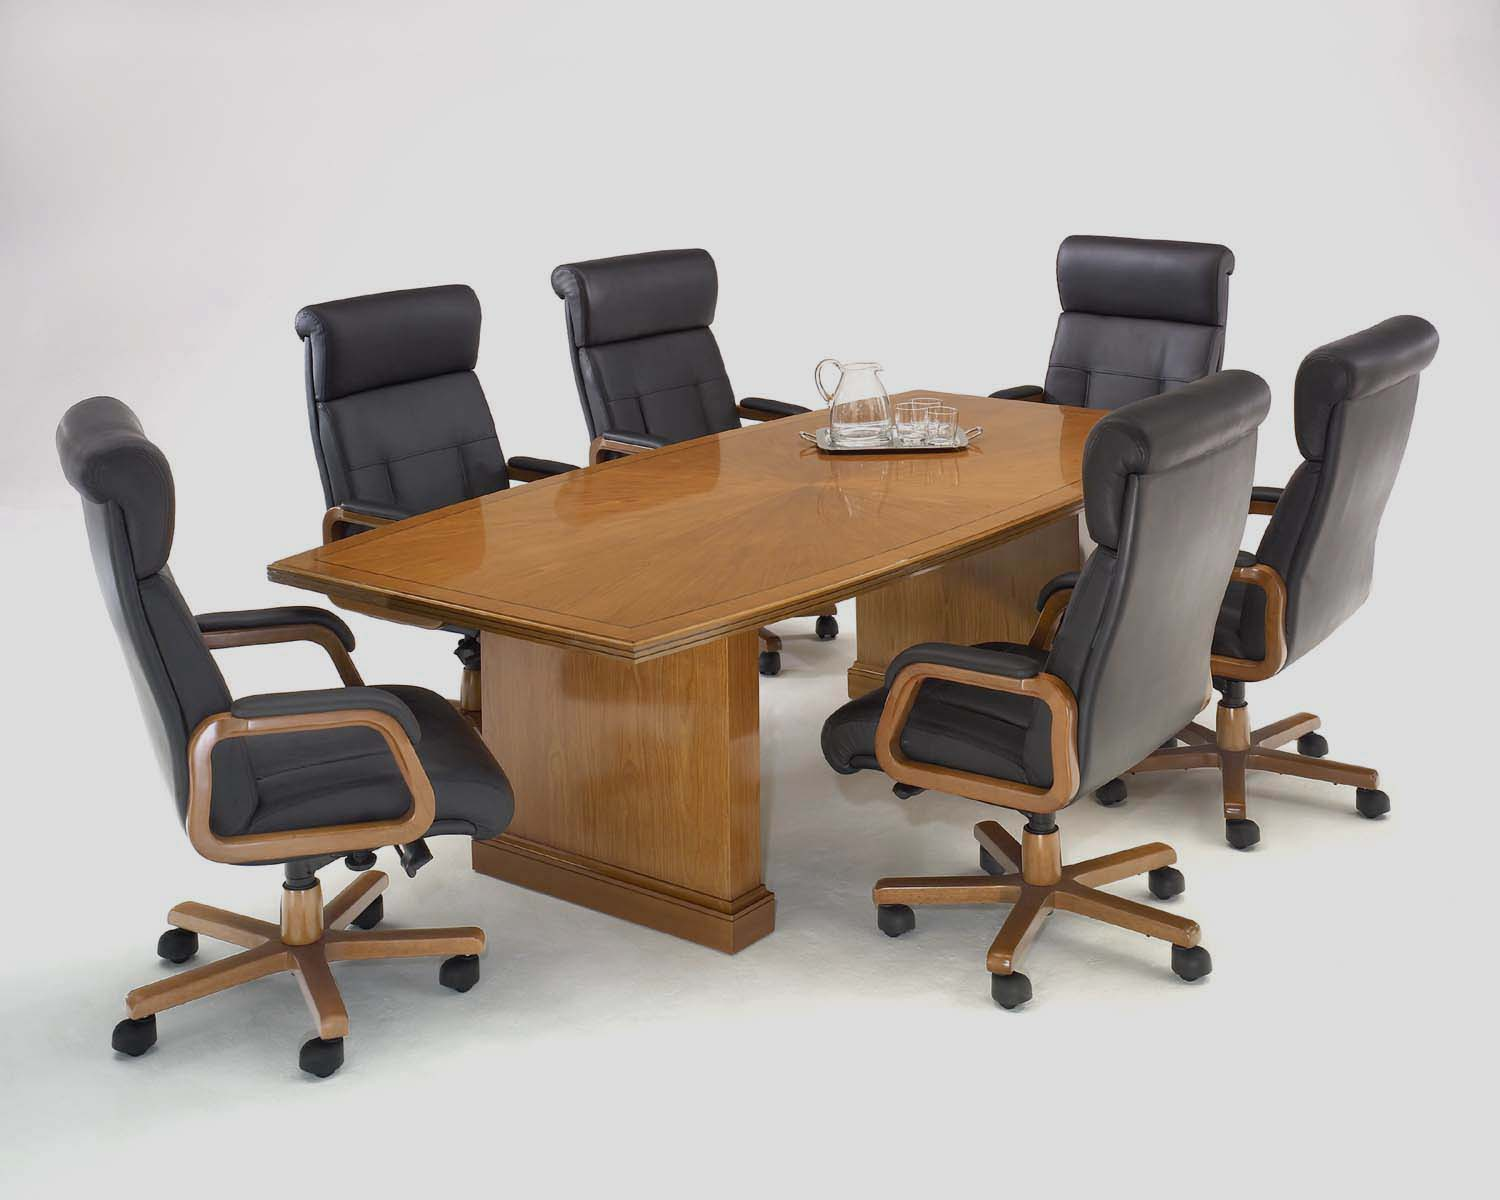 conference tables - minneapolis - milwaukee - podany's